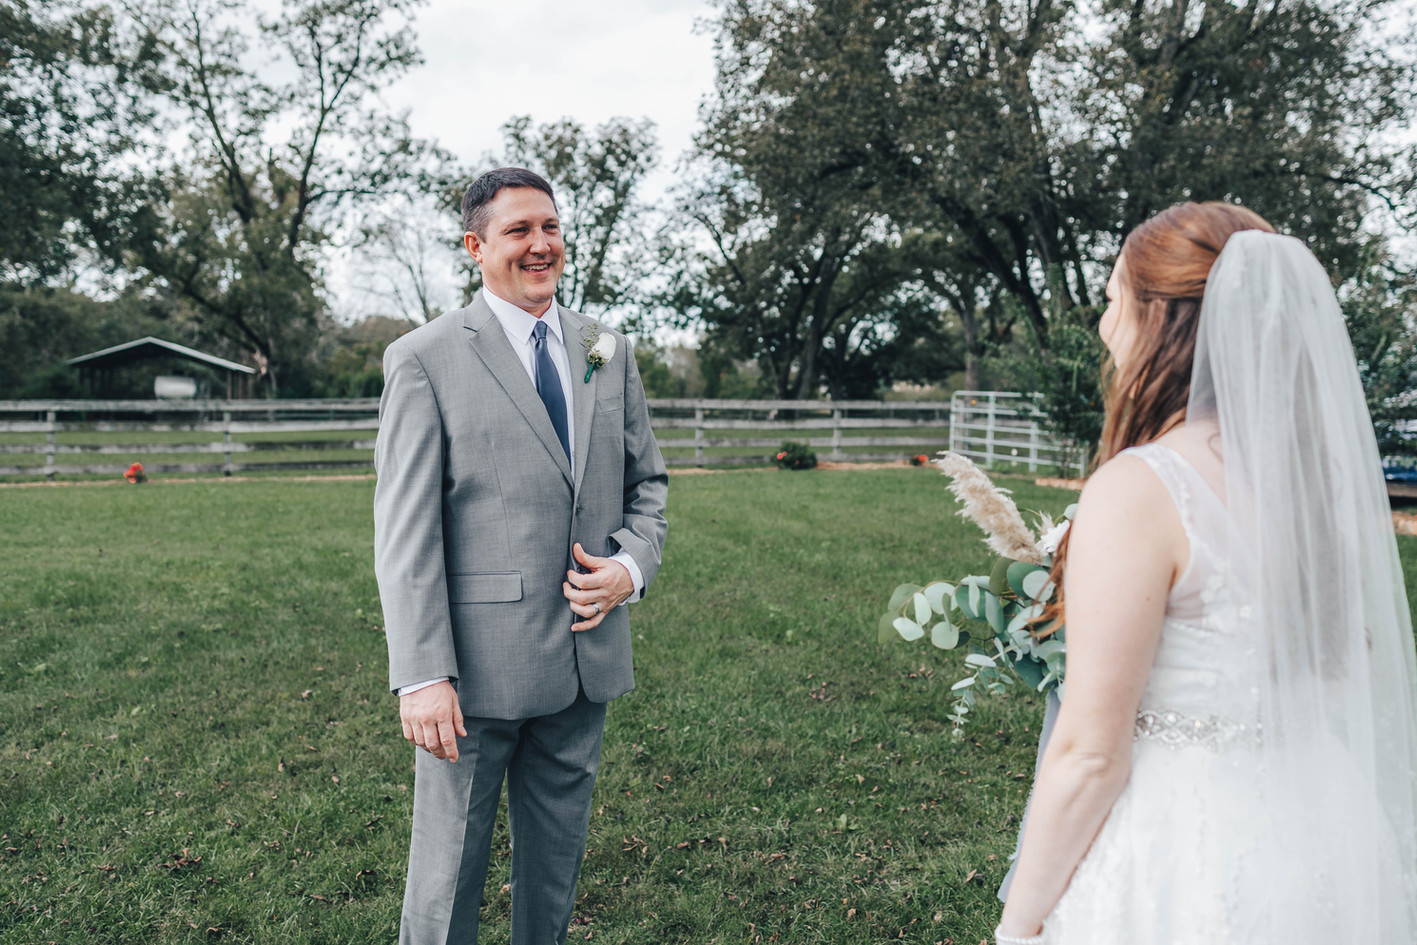 First look with Janna's Dad